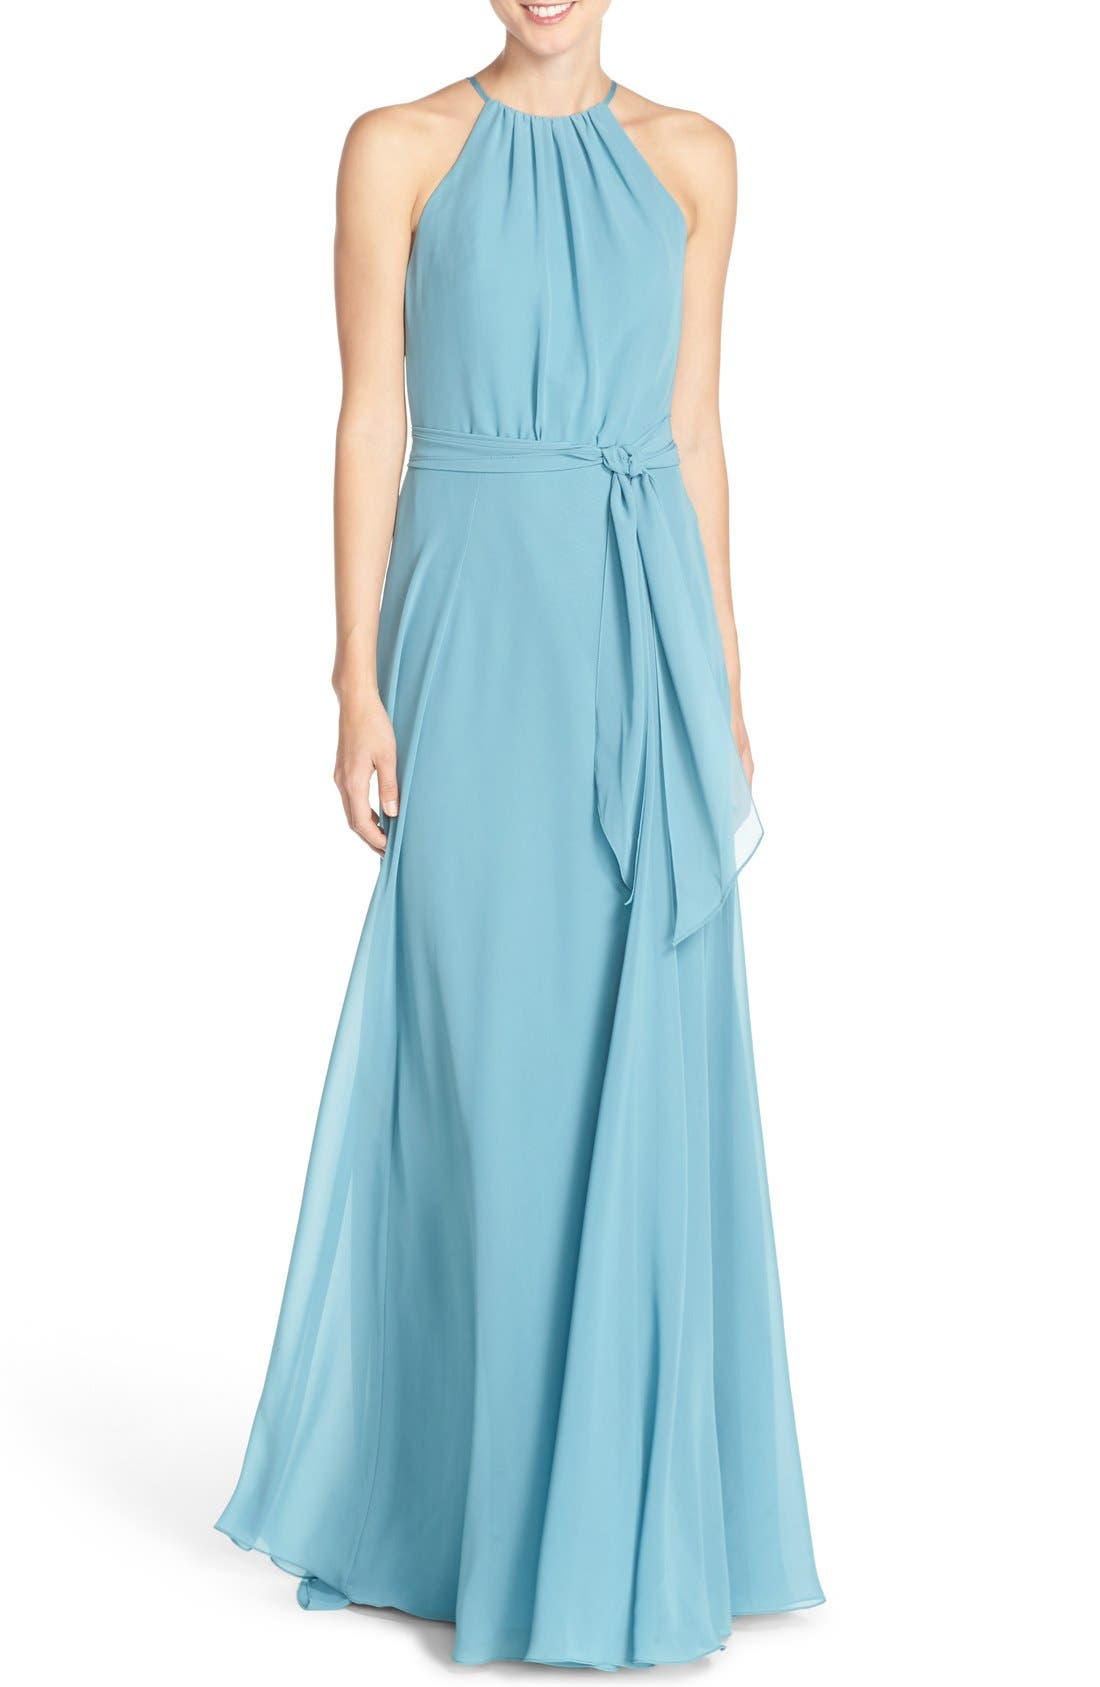 'Delaney' Belted A-Line Chiffon Halter Dress,                             Main thumbnail 1, color,                             Teal